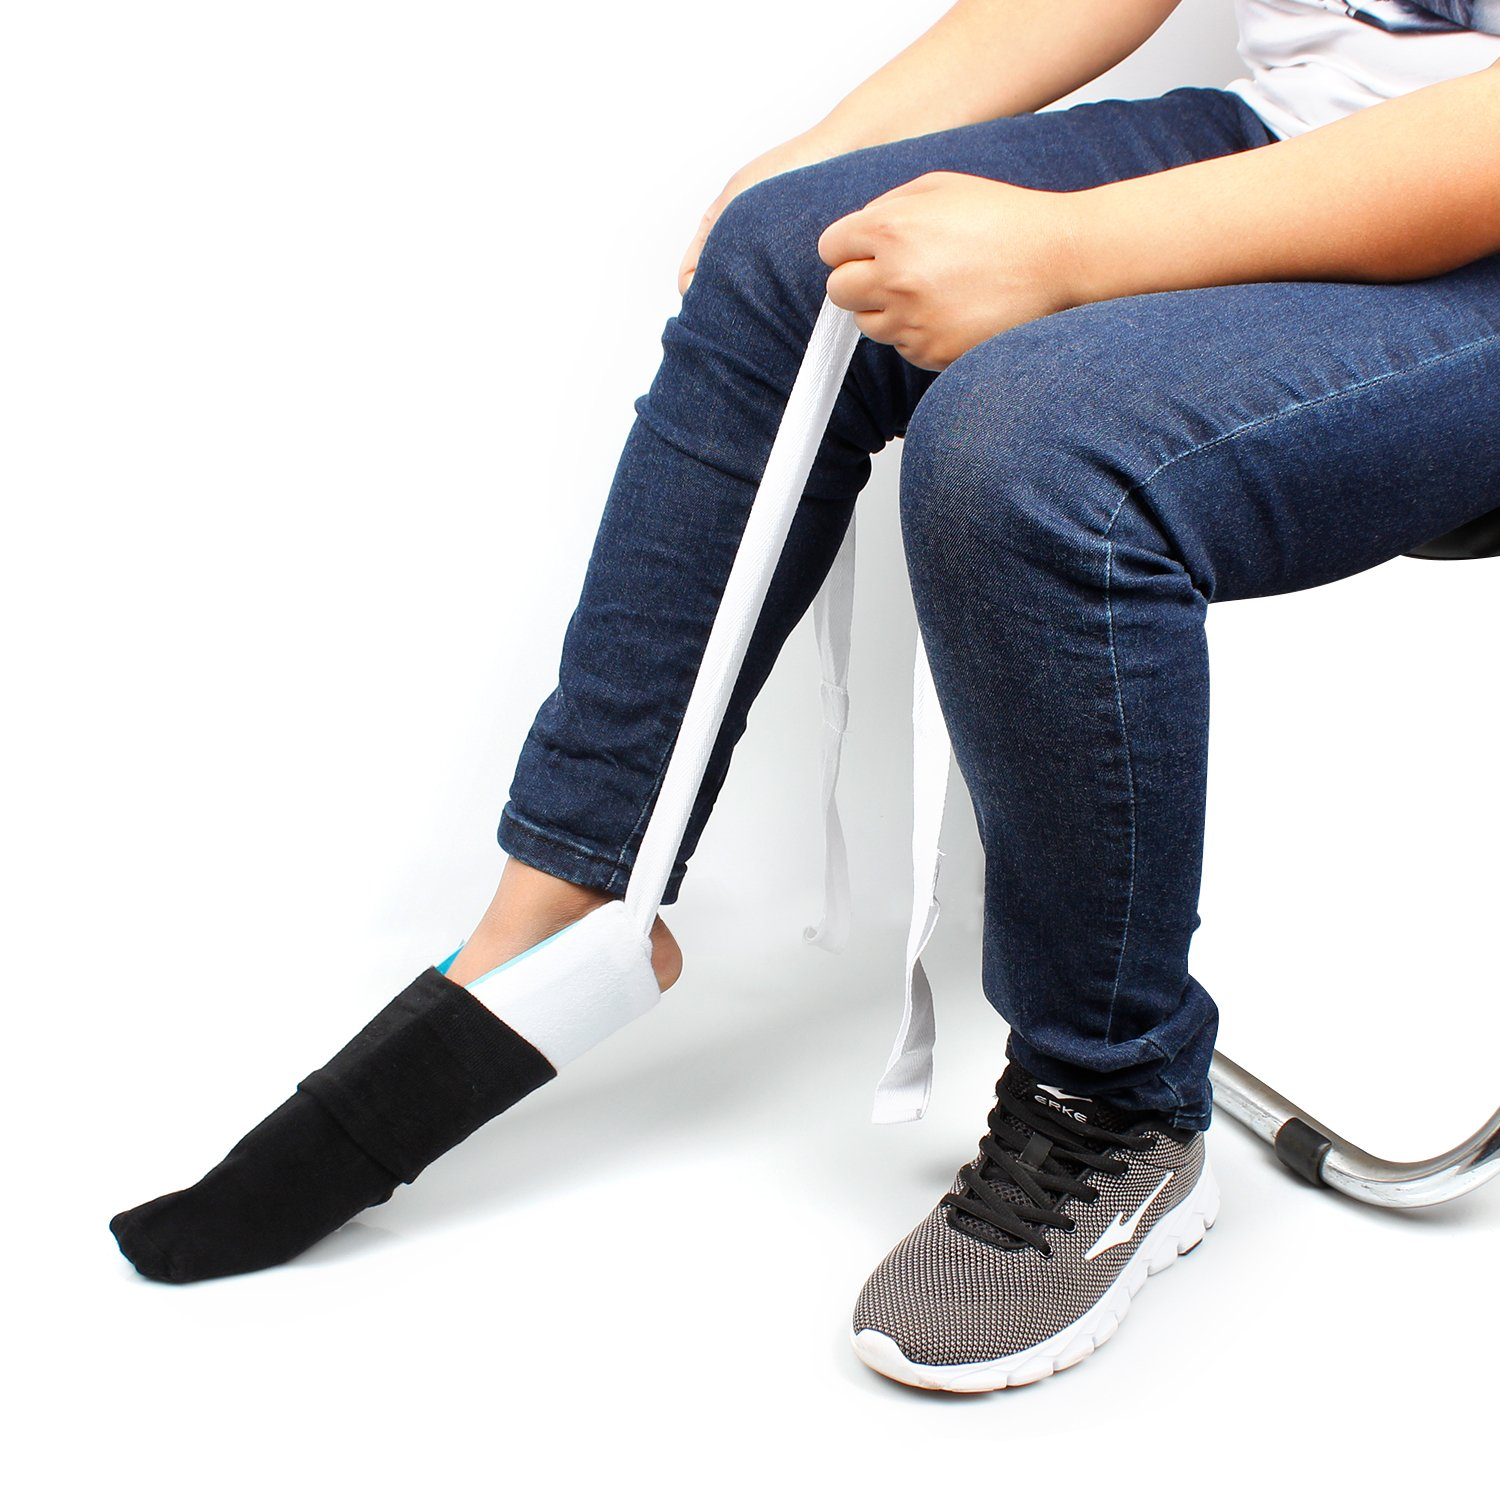 Socks Auxiliary Tool,Flexible Sock&Stocking Aid Kit,for Elderly, Disabled, and Handicapped